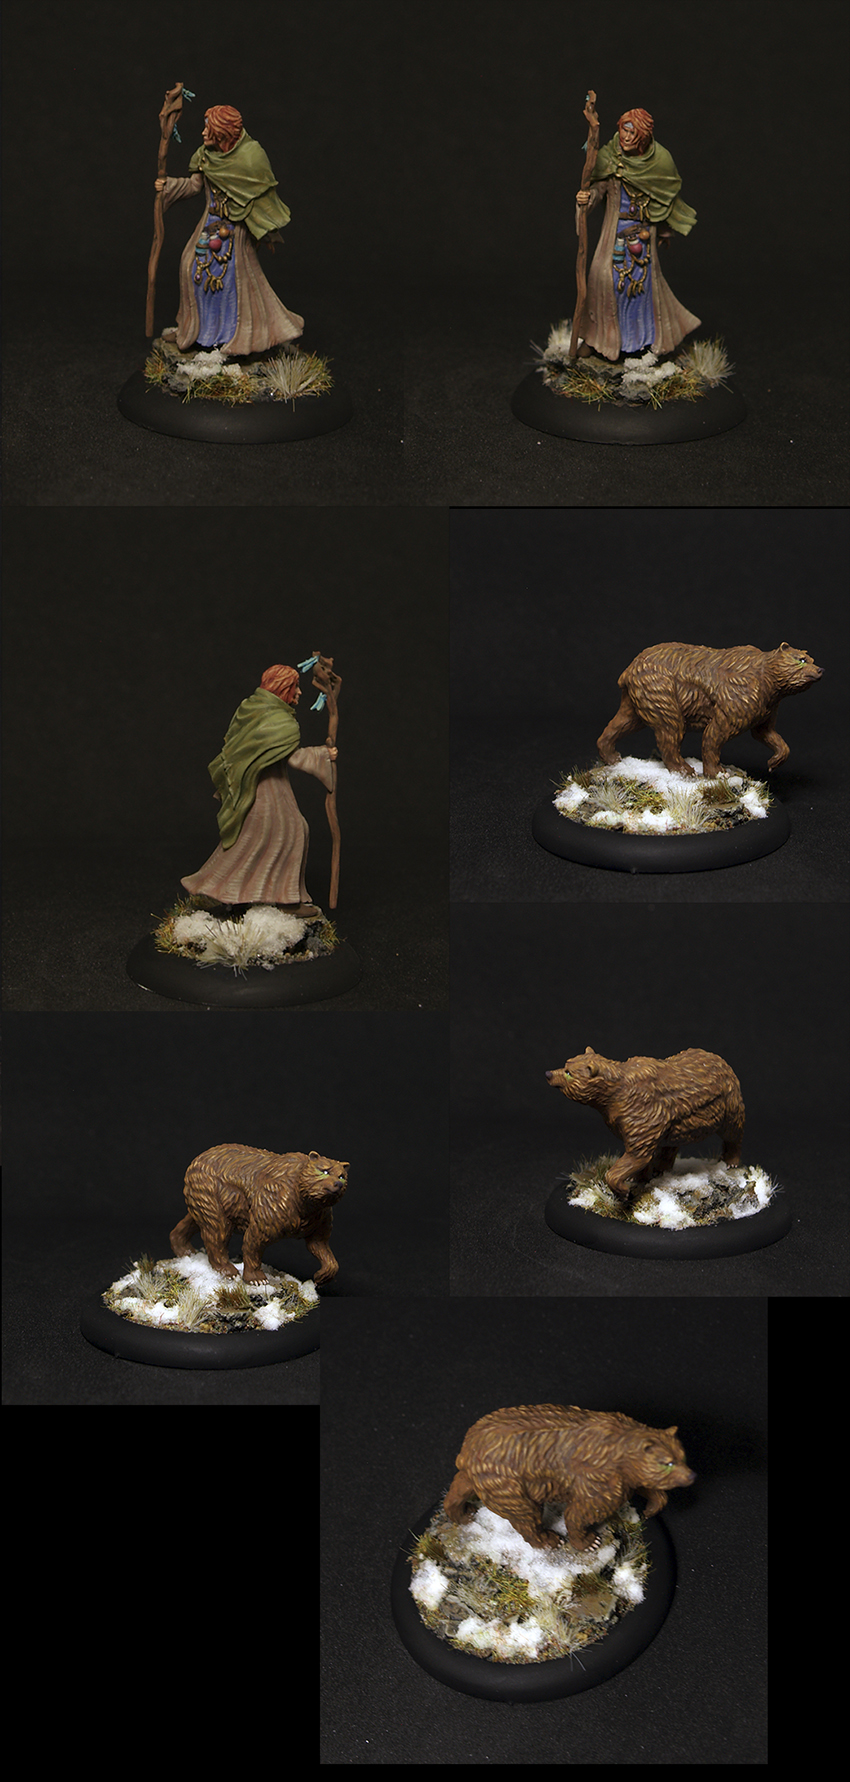 Female Wizard Mother Yulia and Grizzly Bear